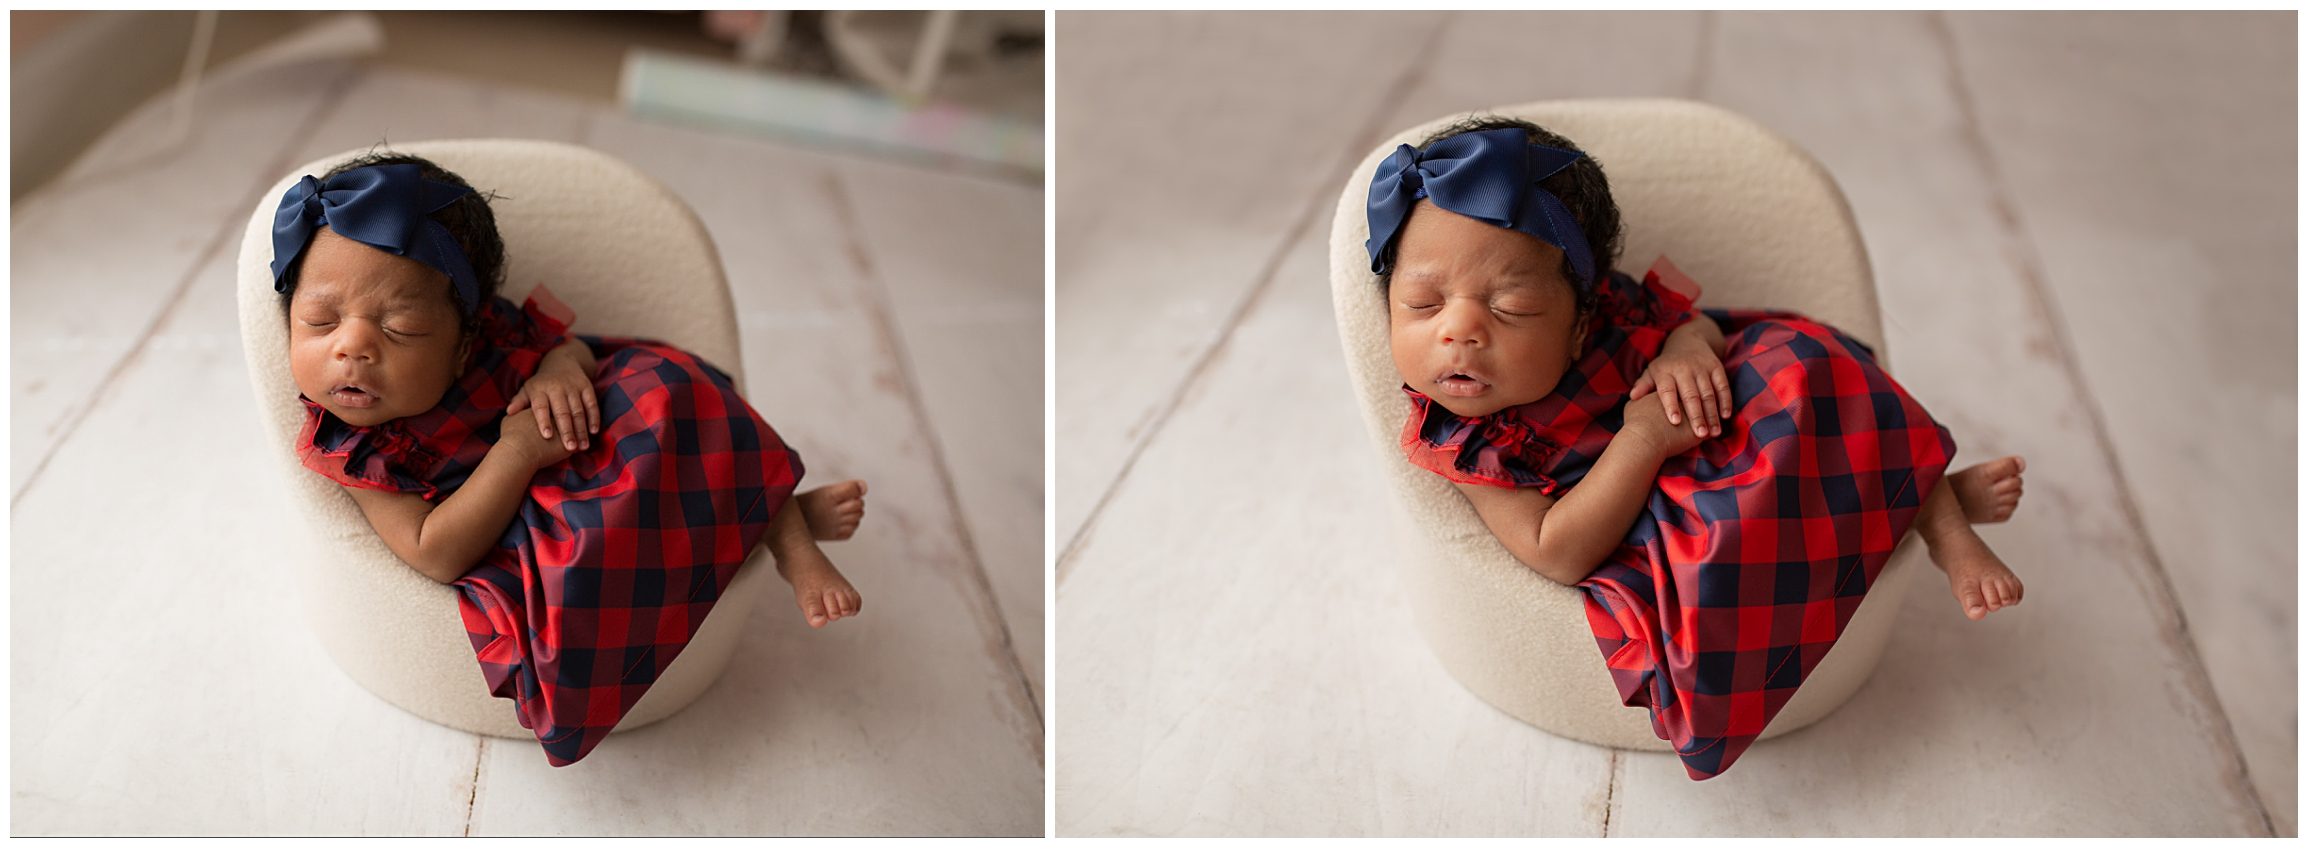 I extended the floor drop that I used for this image because it was a little too short to fit into the image.  This baby was a dream! She slept through it all.